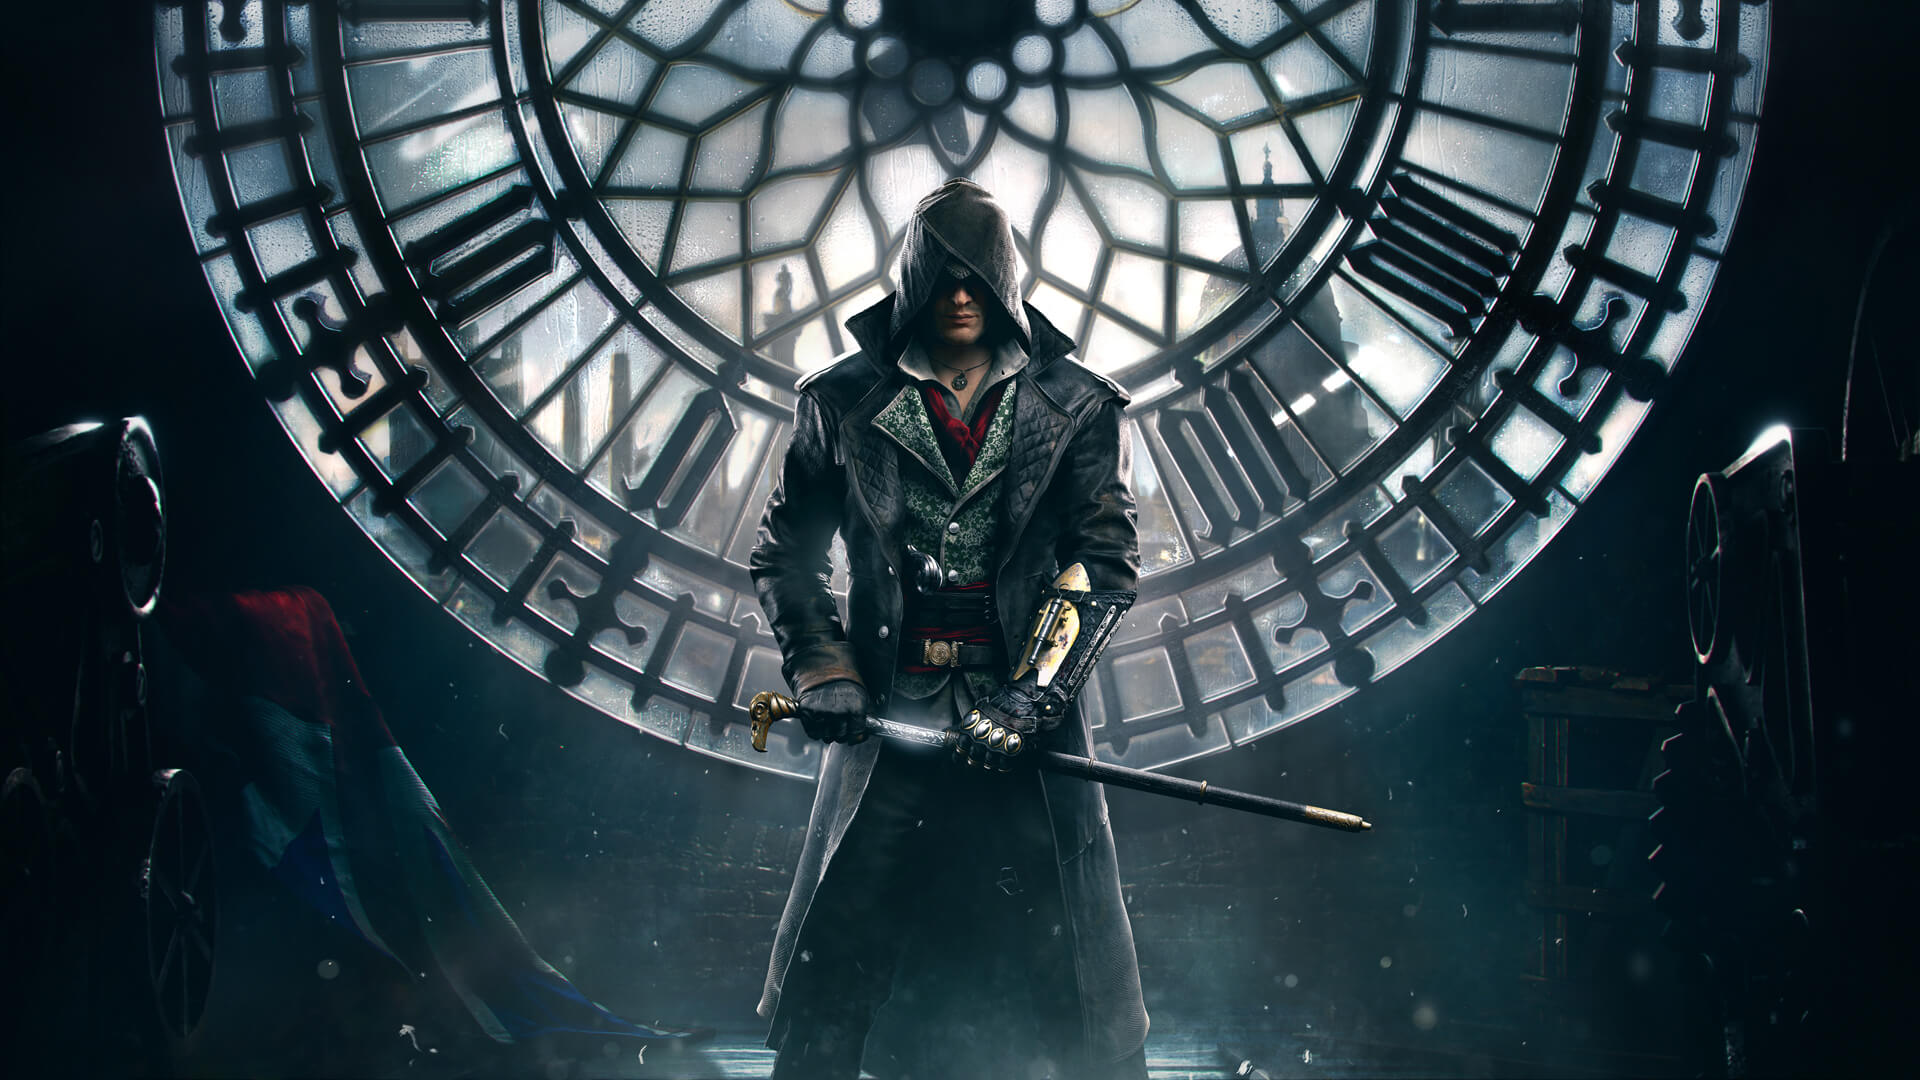 Assassin S Creed Syndicate For Ps4 Xb1 Pc Reviews Opencritic